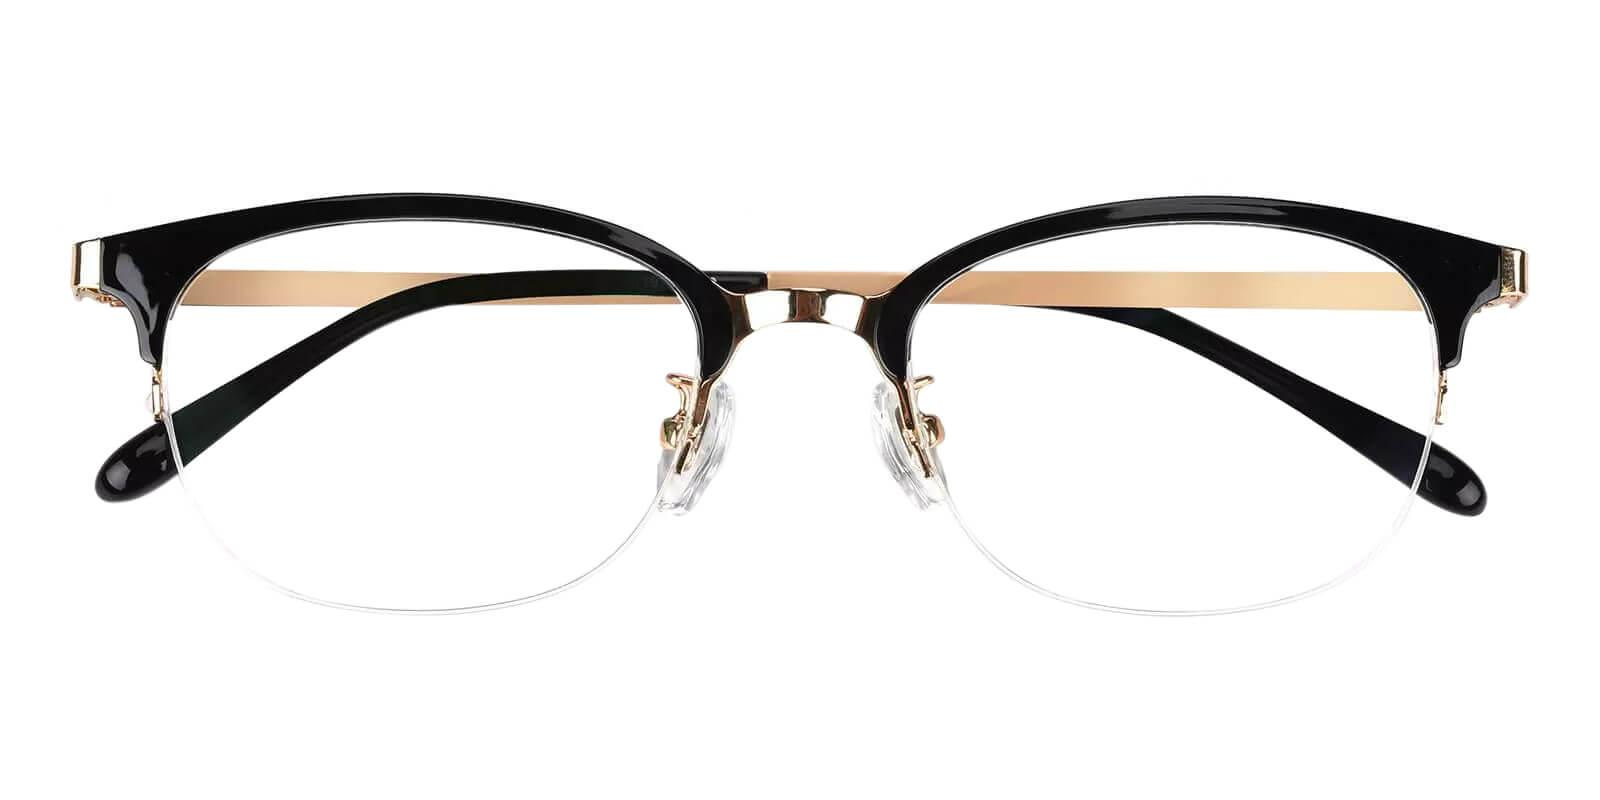 Polly Black Combination Eyeglasses , Fashion , NosePads Frames from ABBE Glasses